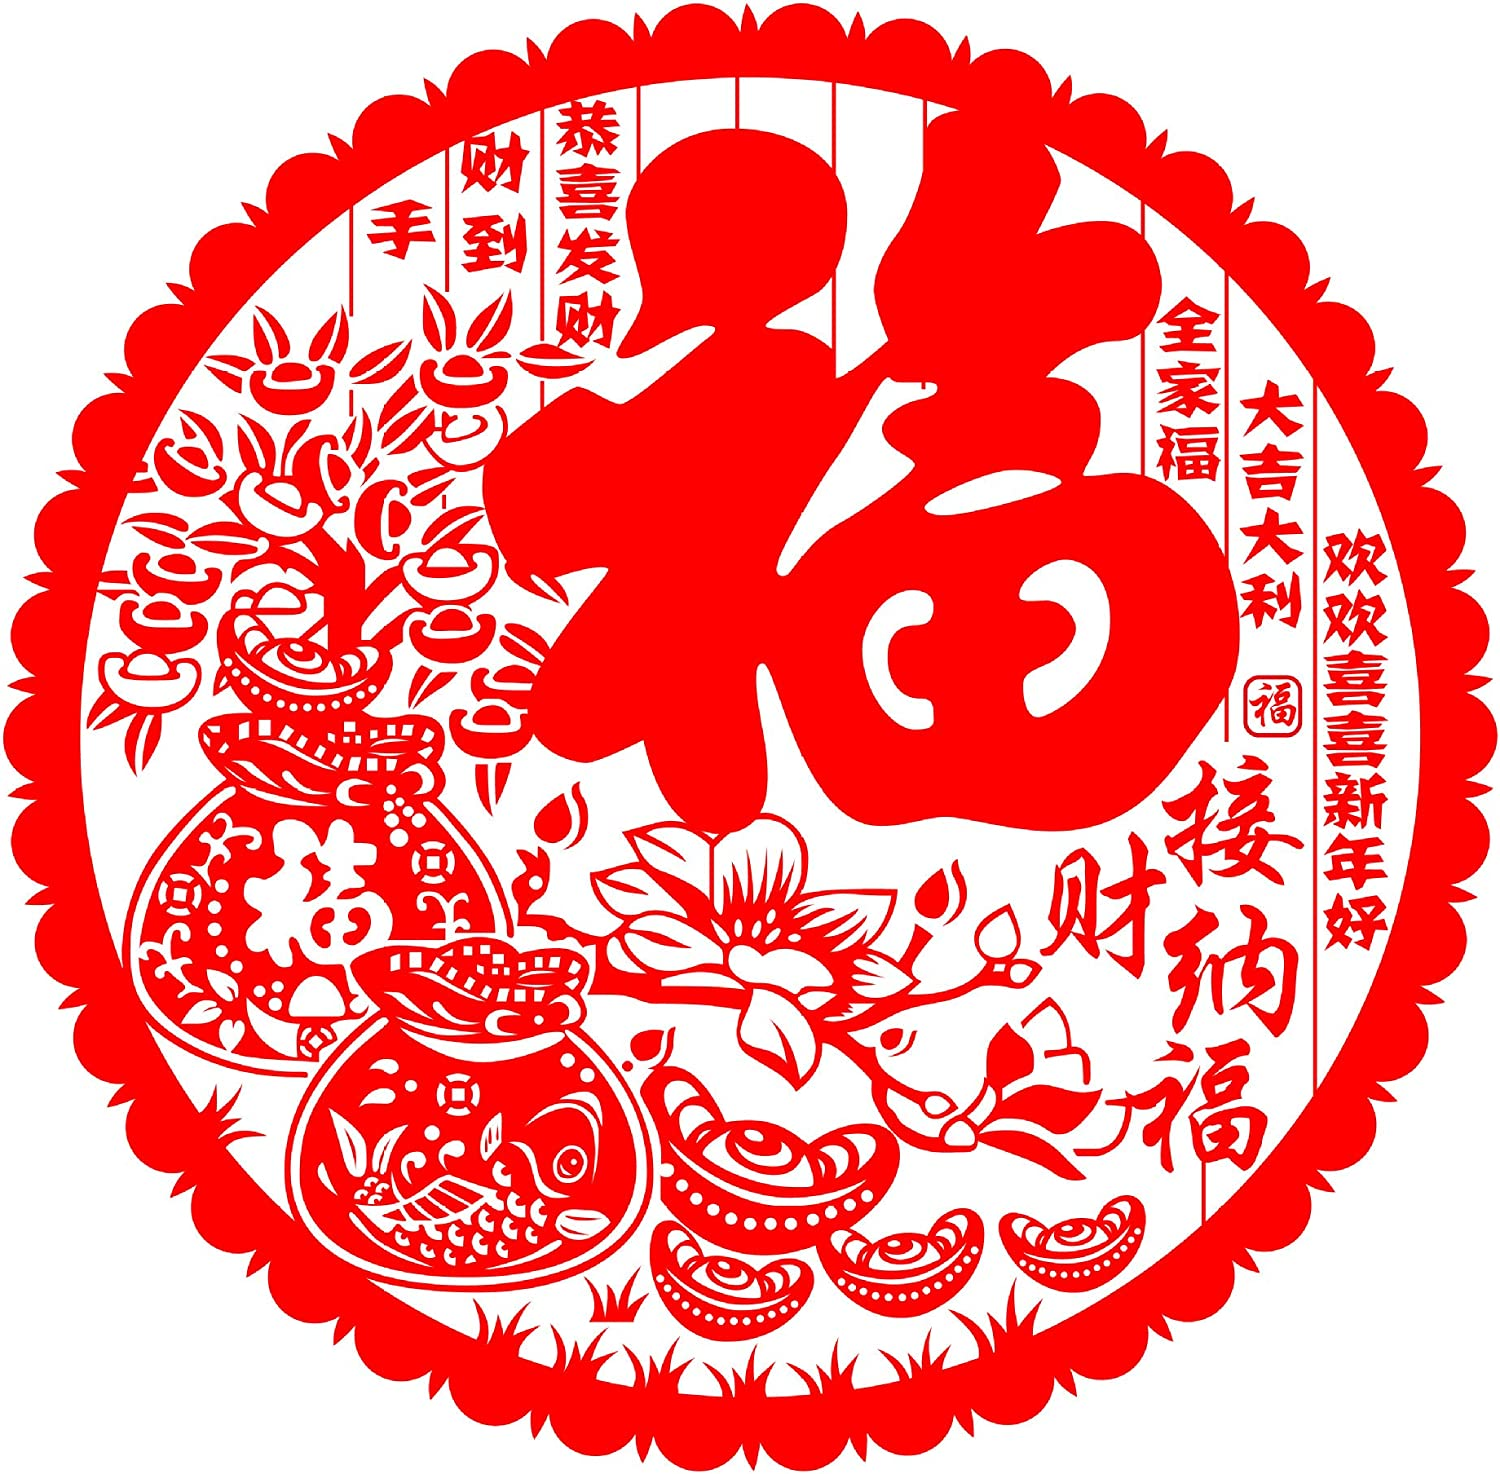 WS 2 Chinese New Year Window Cling Stickers Spring Festival Self-Adhesive FU Word Decorations Year of The Ox Removable Art Decorfor Home Restaurant Store(20pcs)